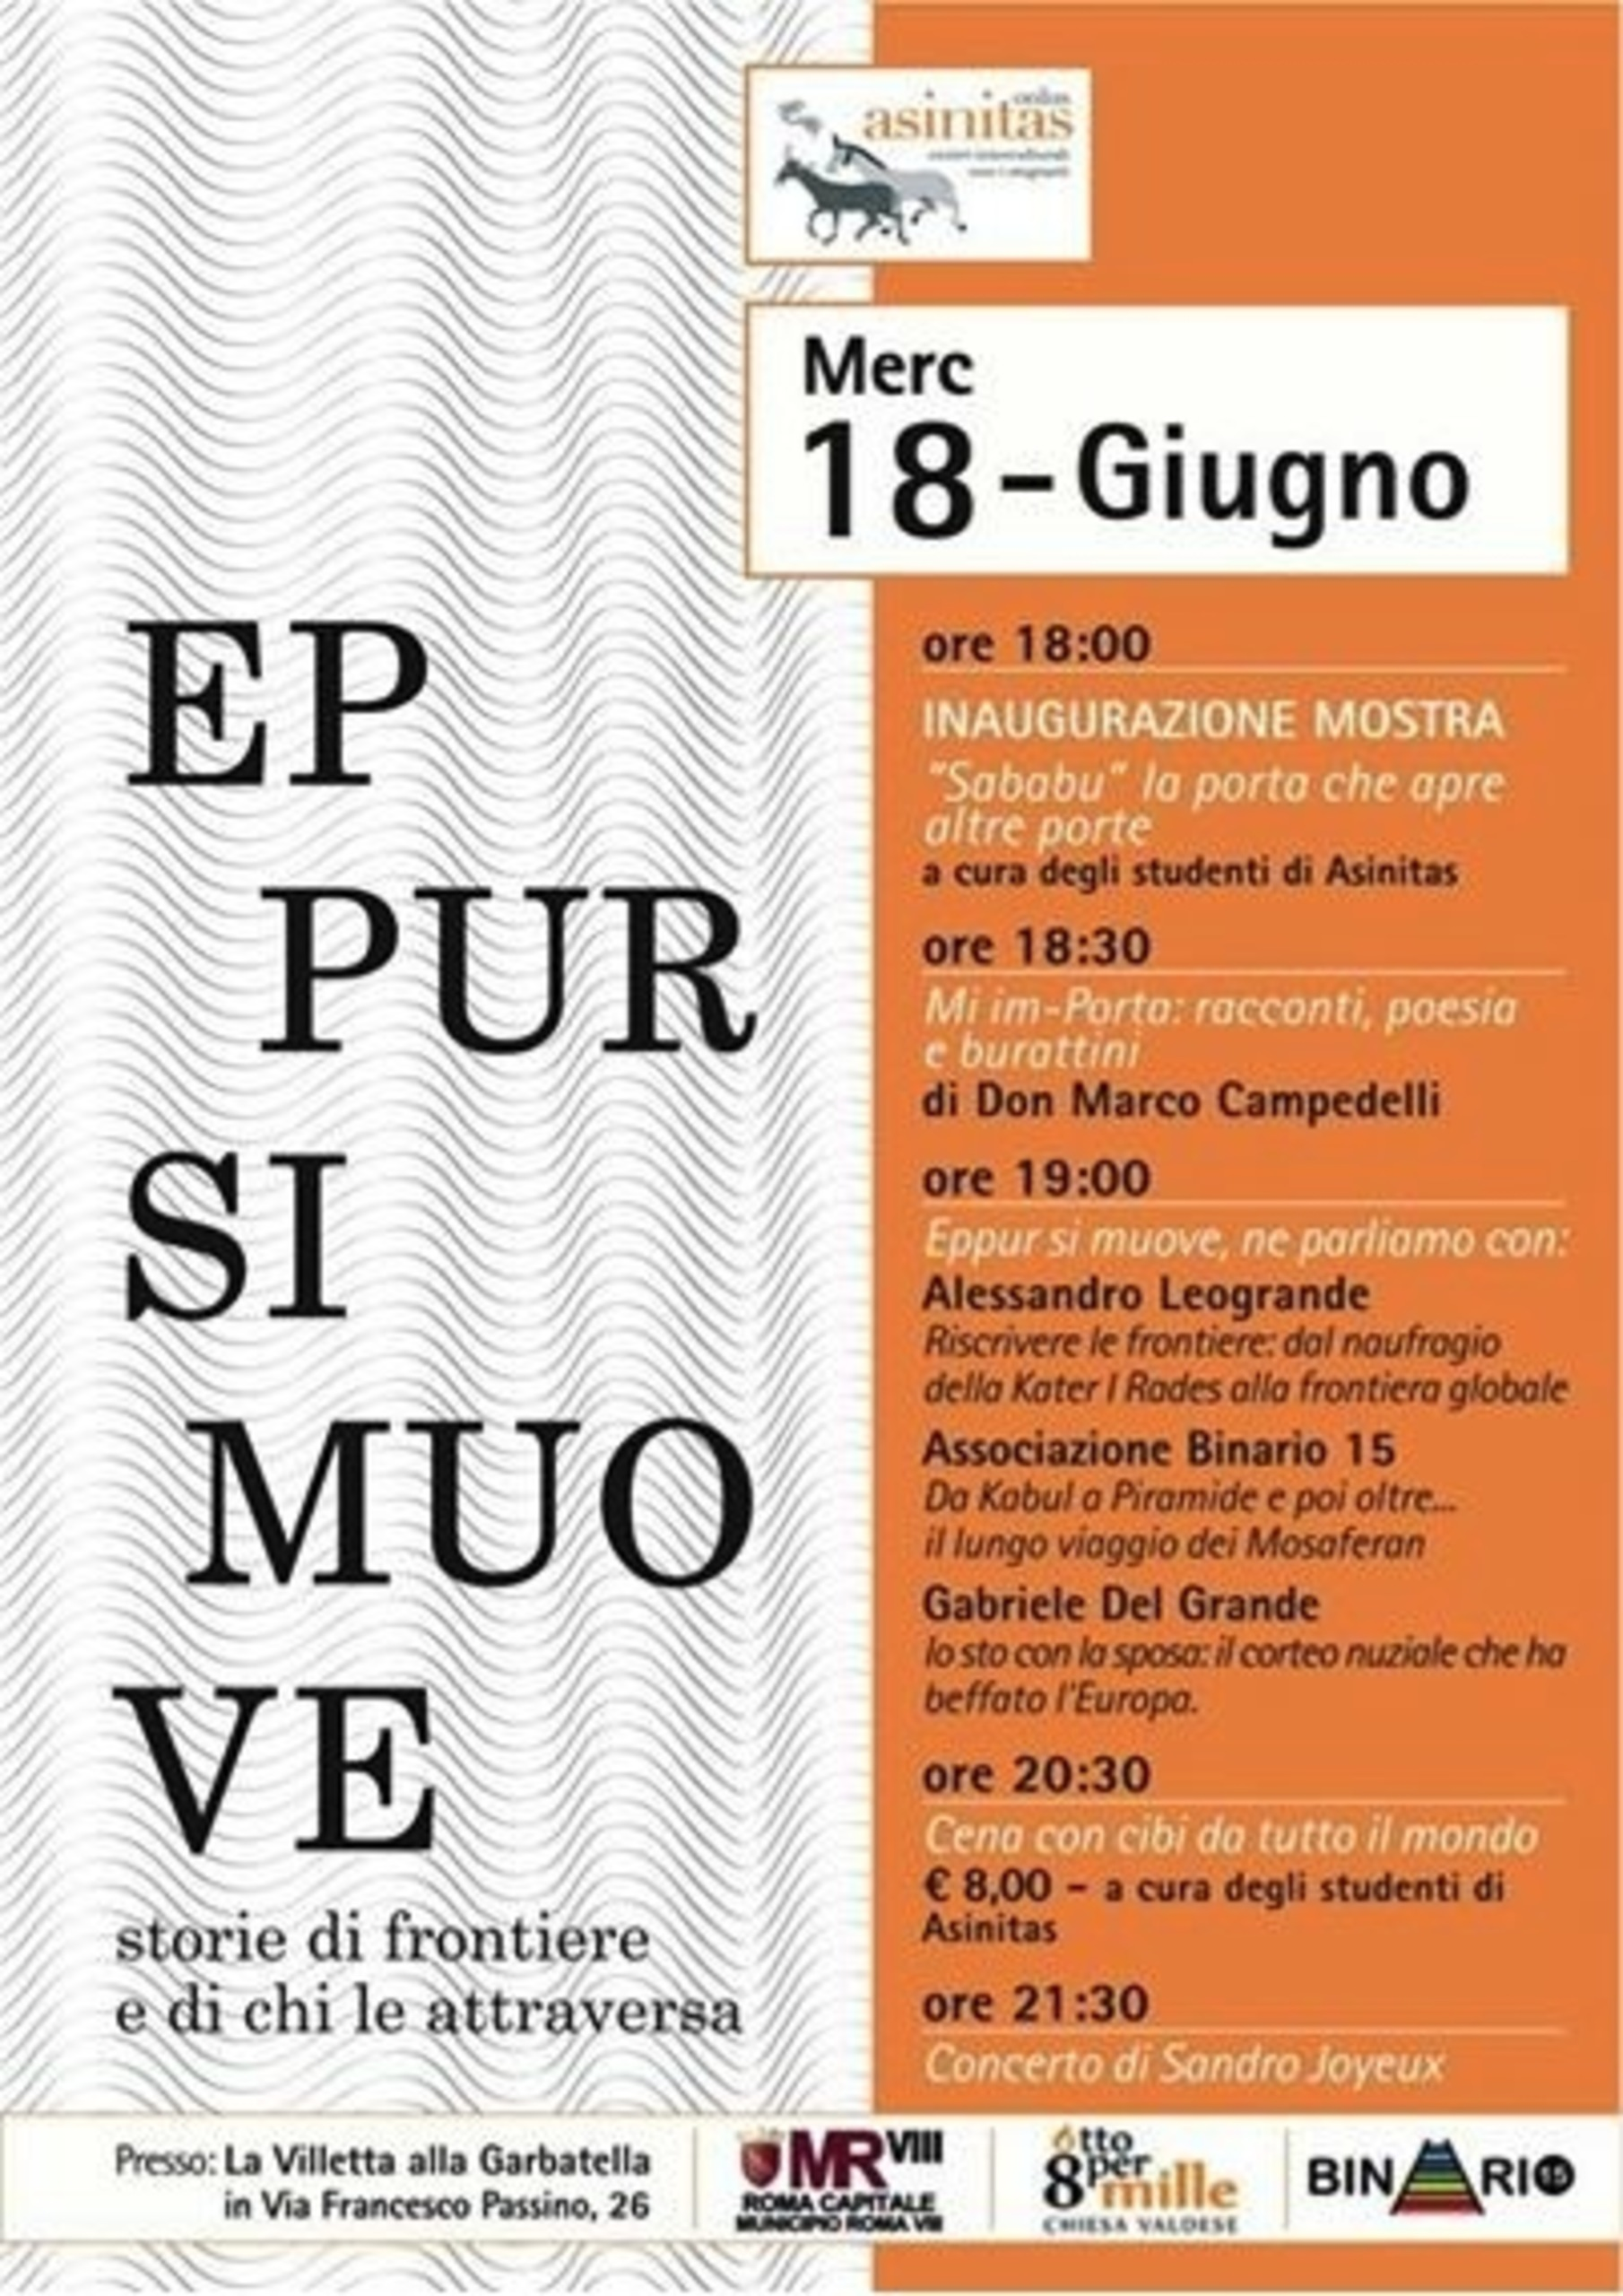 EP PUR SI MUO VE - Featured image